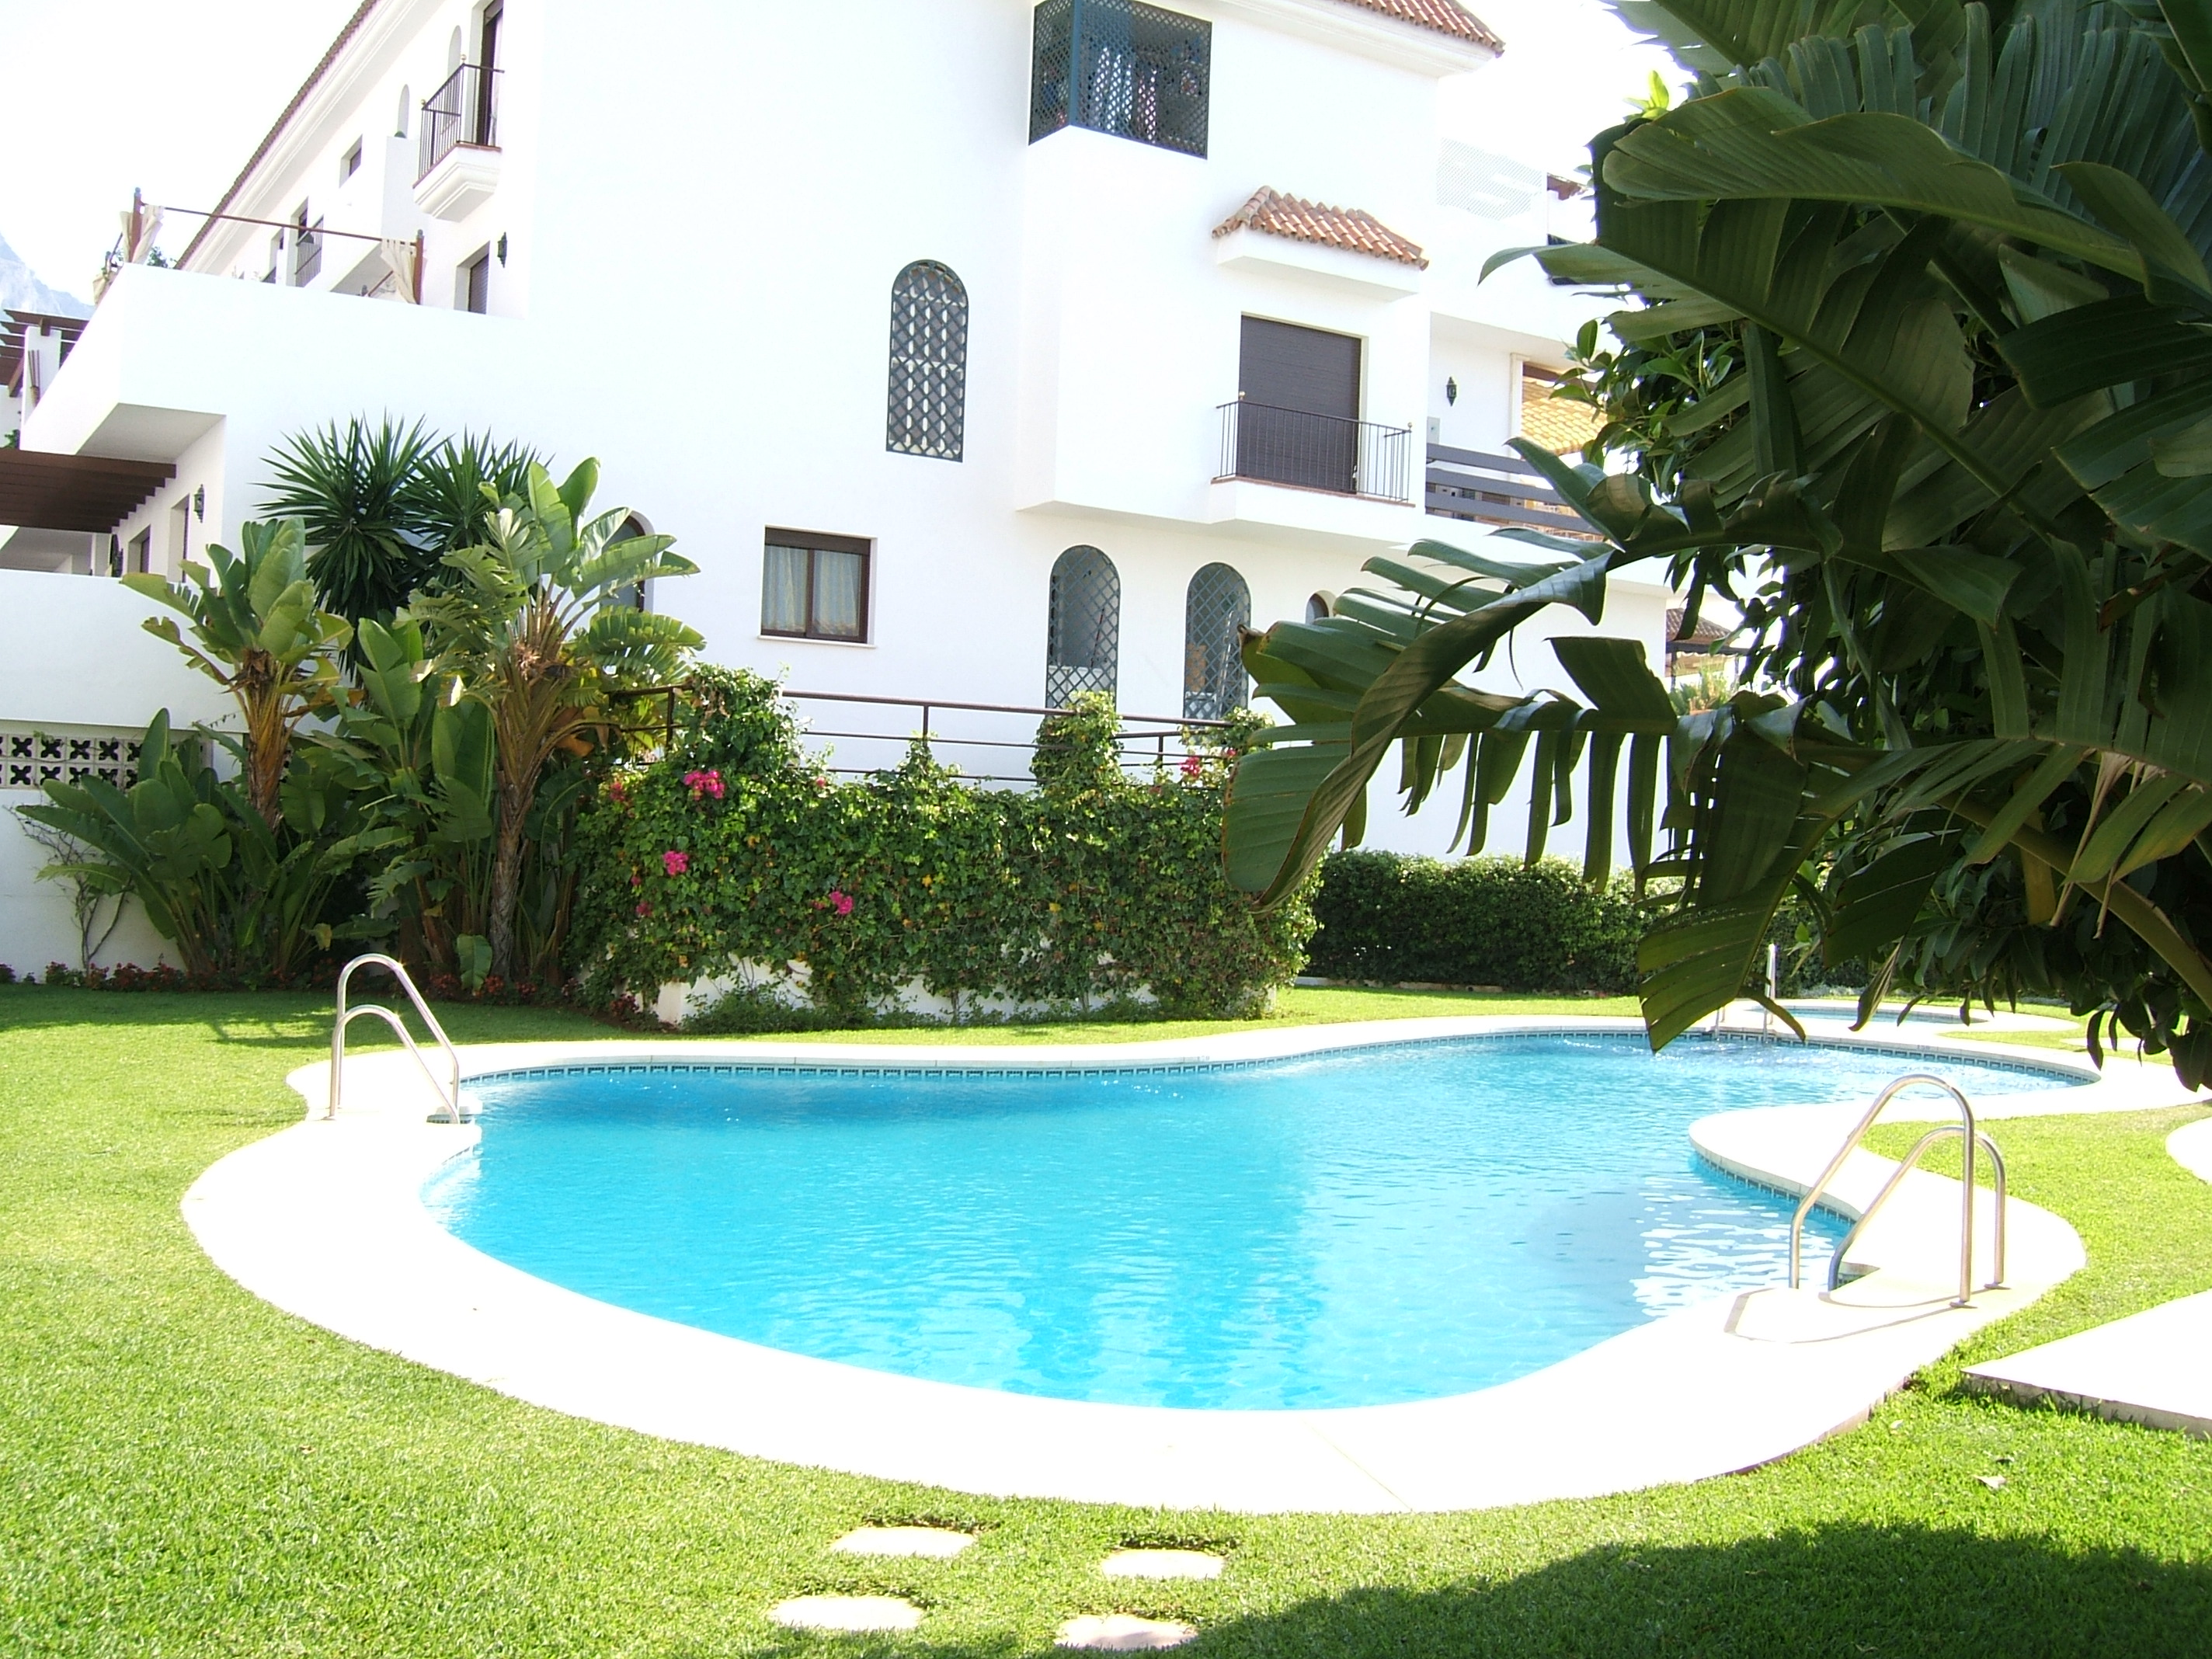 Apartment in Coto Real II, Reduced to Sell, From 269.000€ to 254.000€